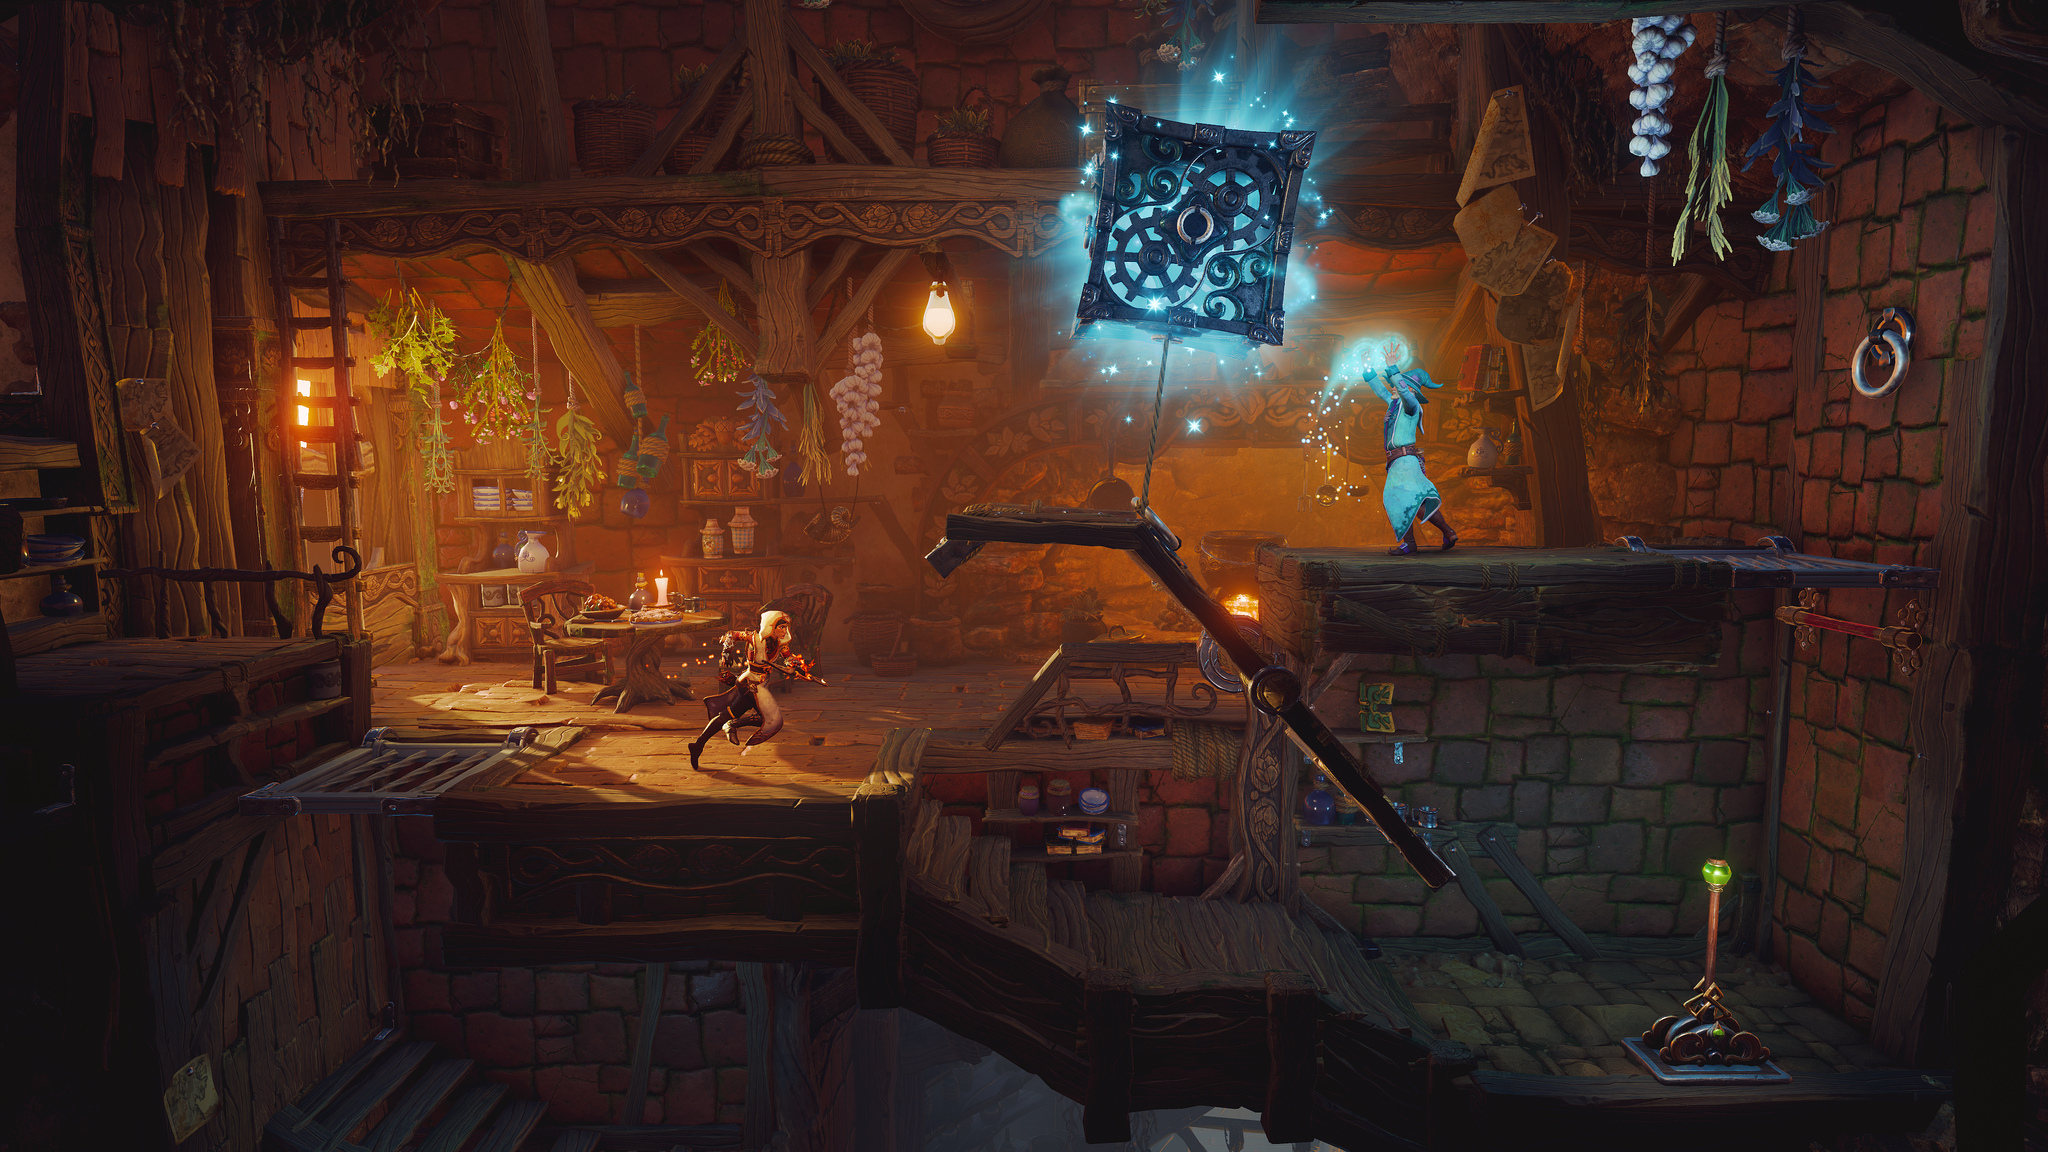 New Trine game screenshots